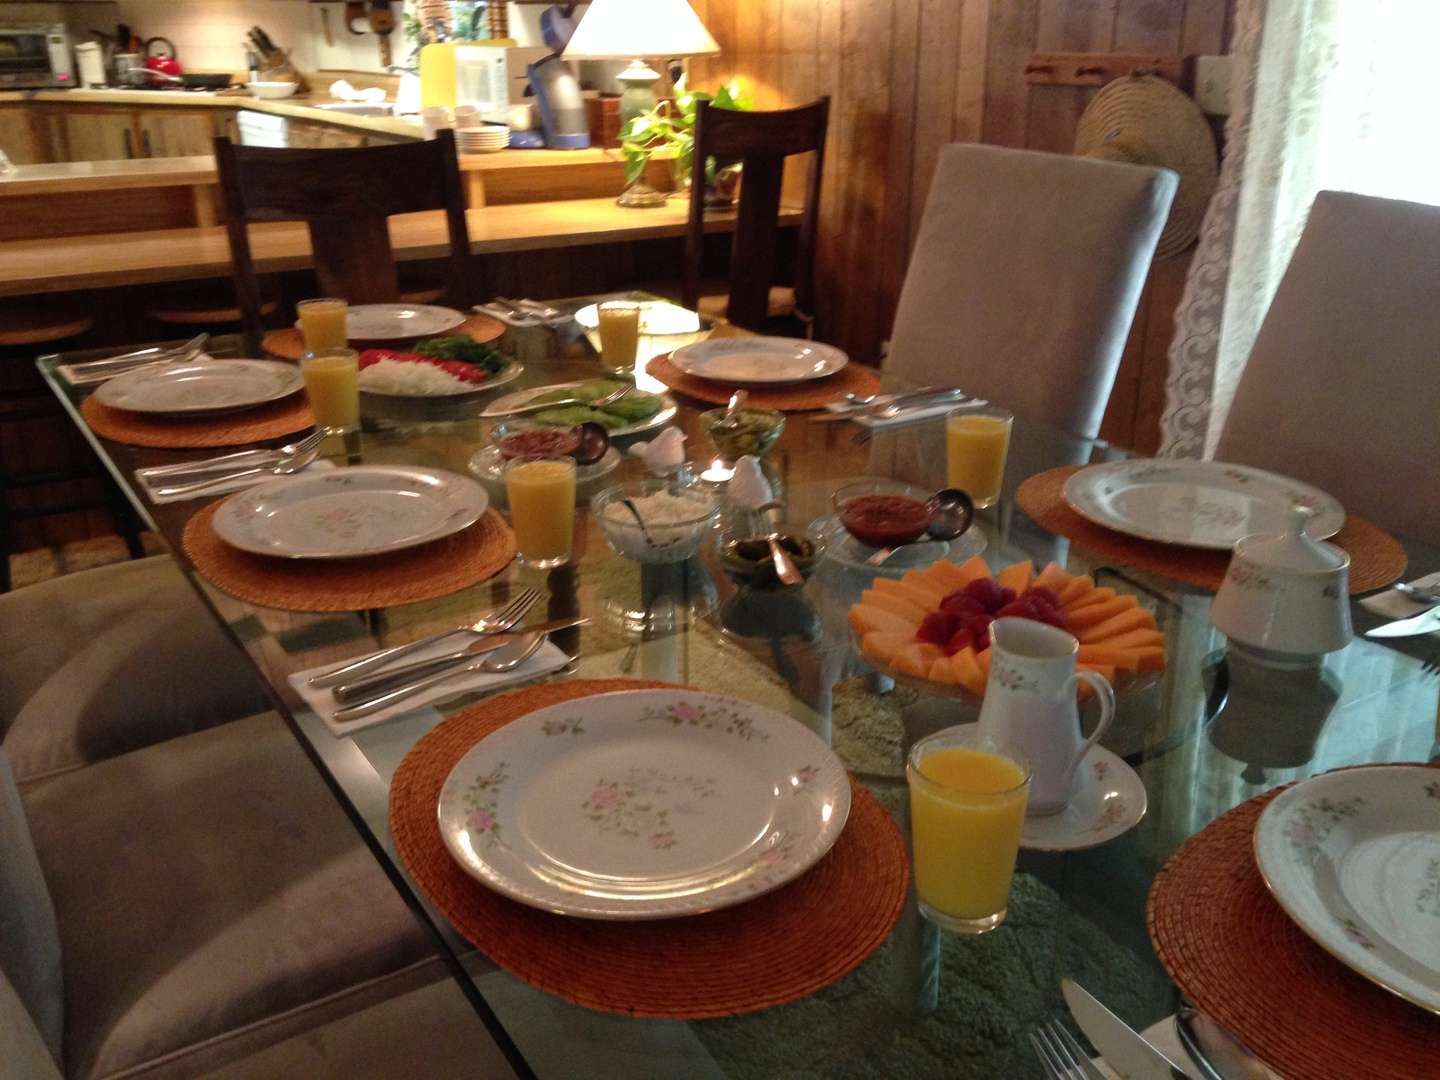 A dining table with a plate of food at Backyard Garden Oasis B&B.